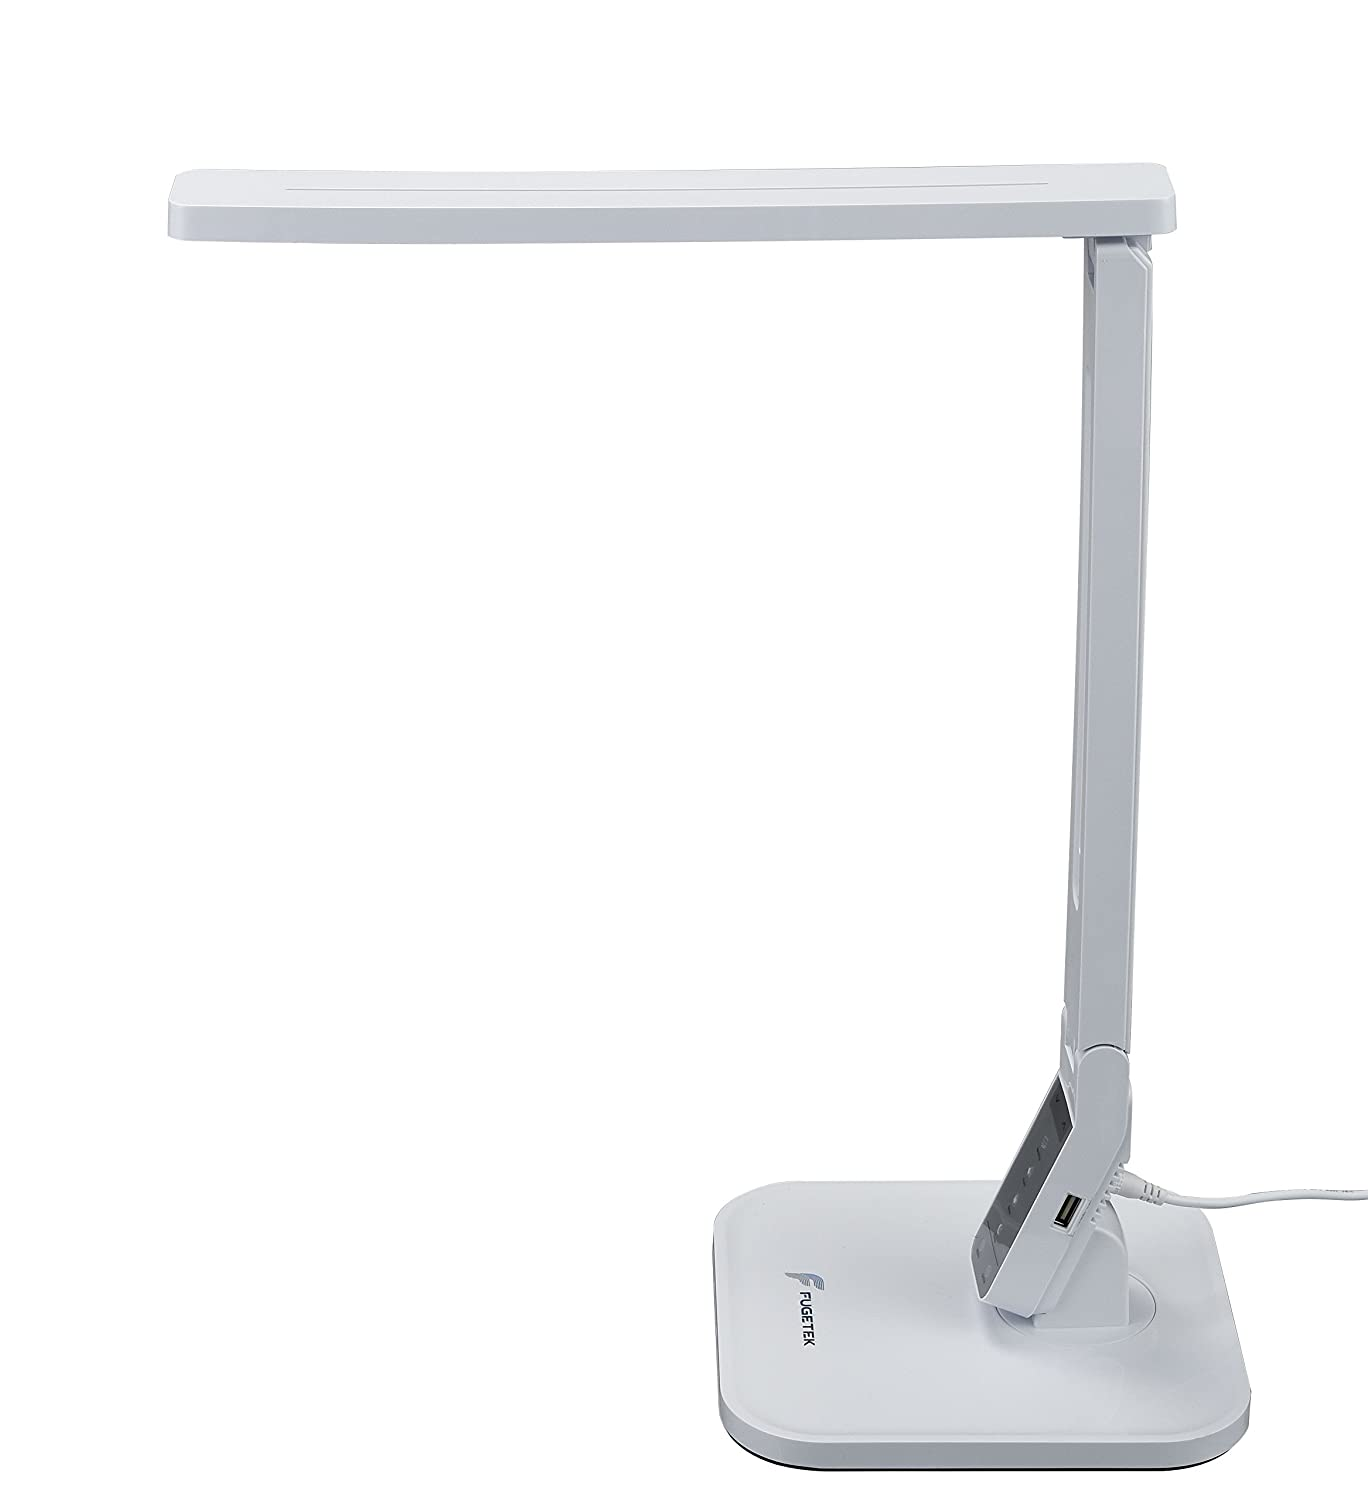 Fugetek LED Table Lamp - White Desk Lamp for Study, Working, Reading